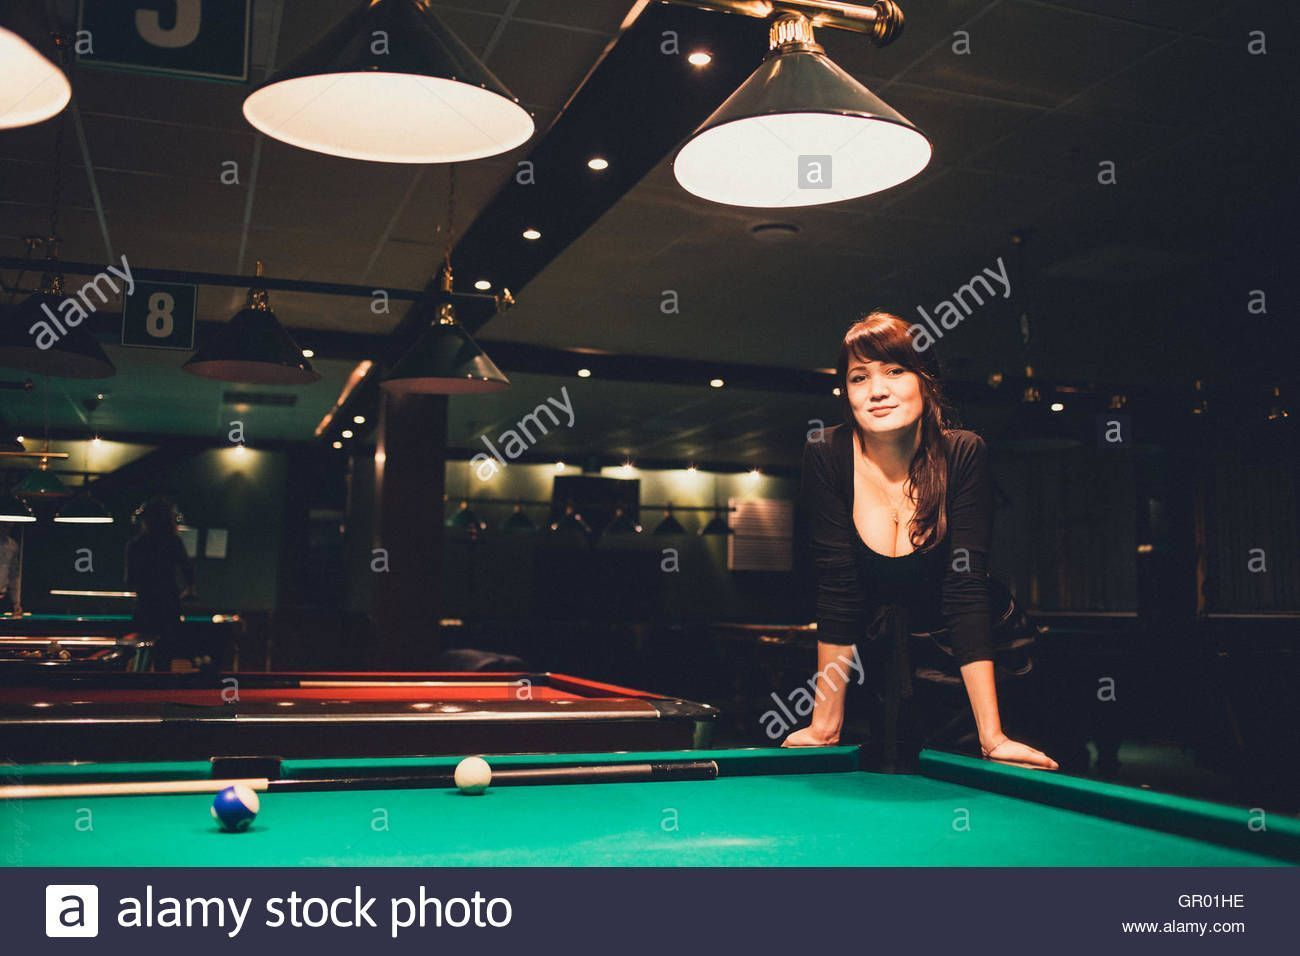 best of Player Busty pool